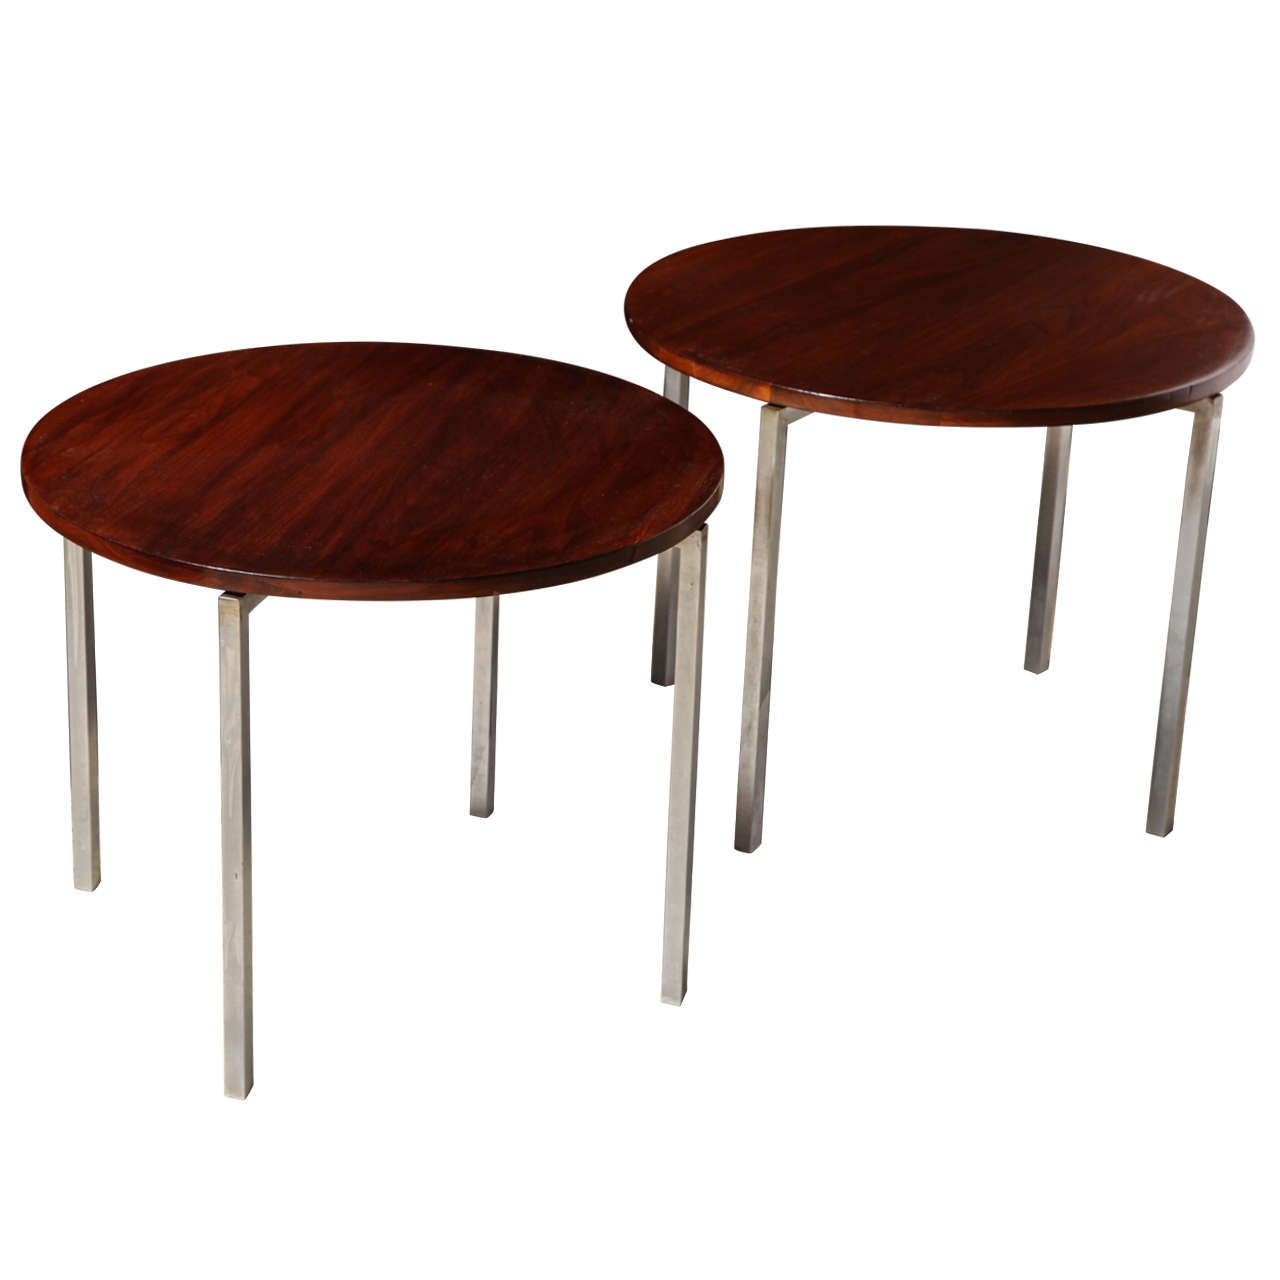 Round Coffee Table Pair: Pair Of Round 1960's Knoll Brushed Steel And Walnut